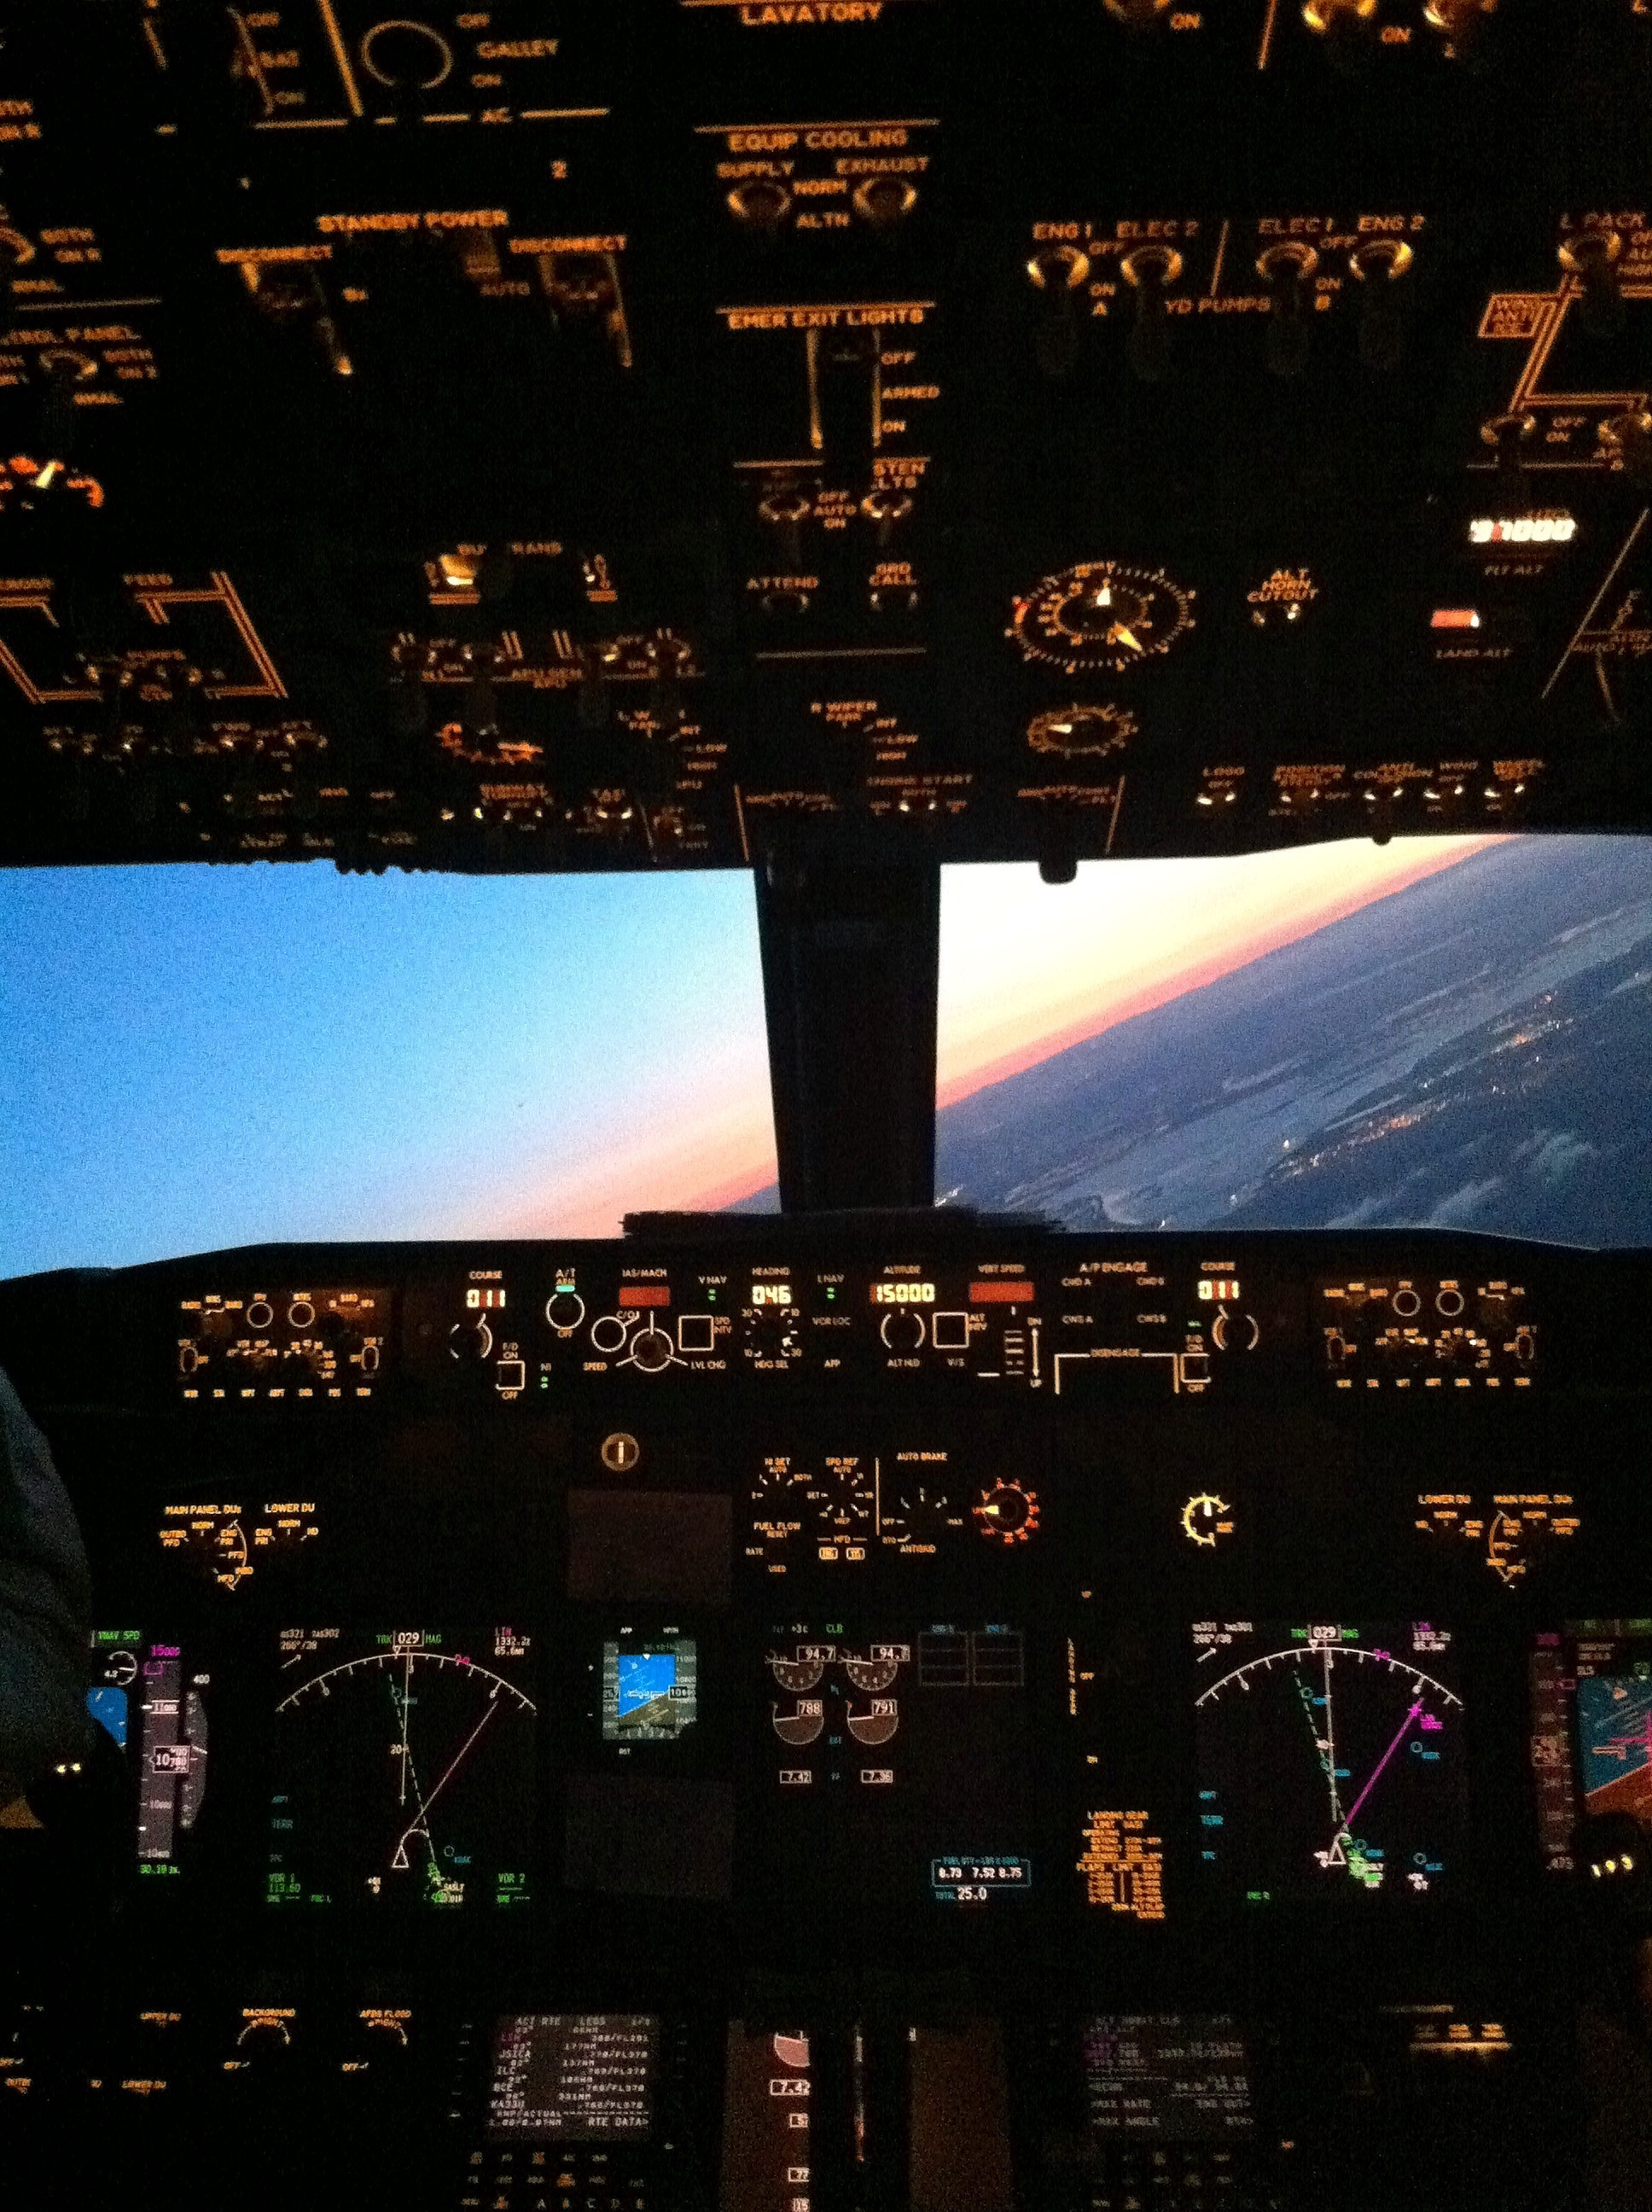 A380 Wallpaper Hd Airplane Cockpit Wallpaper 68 Images